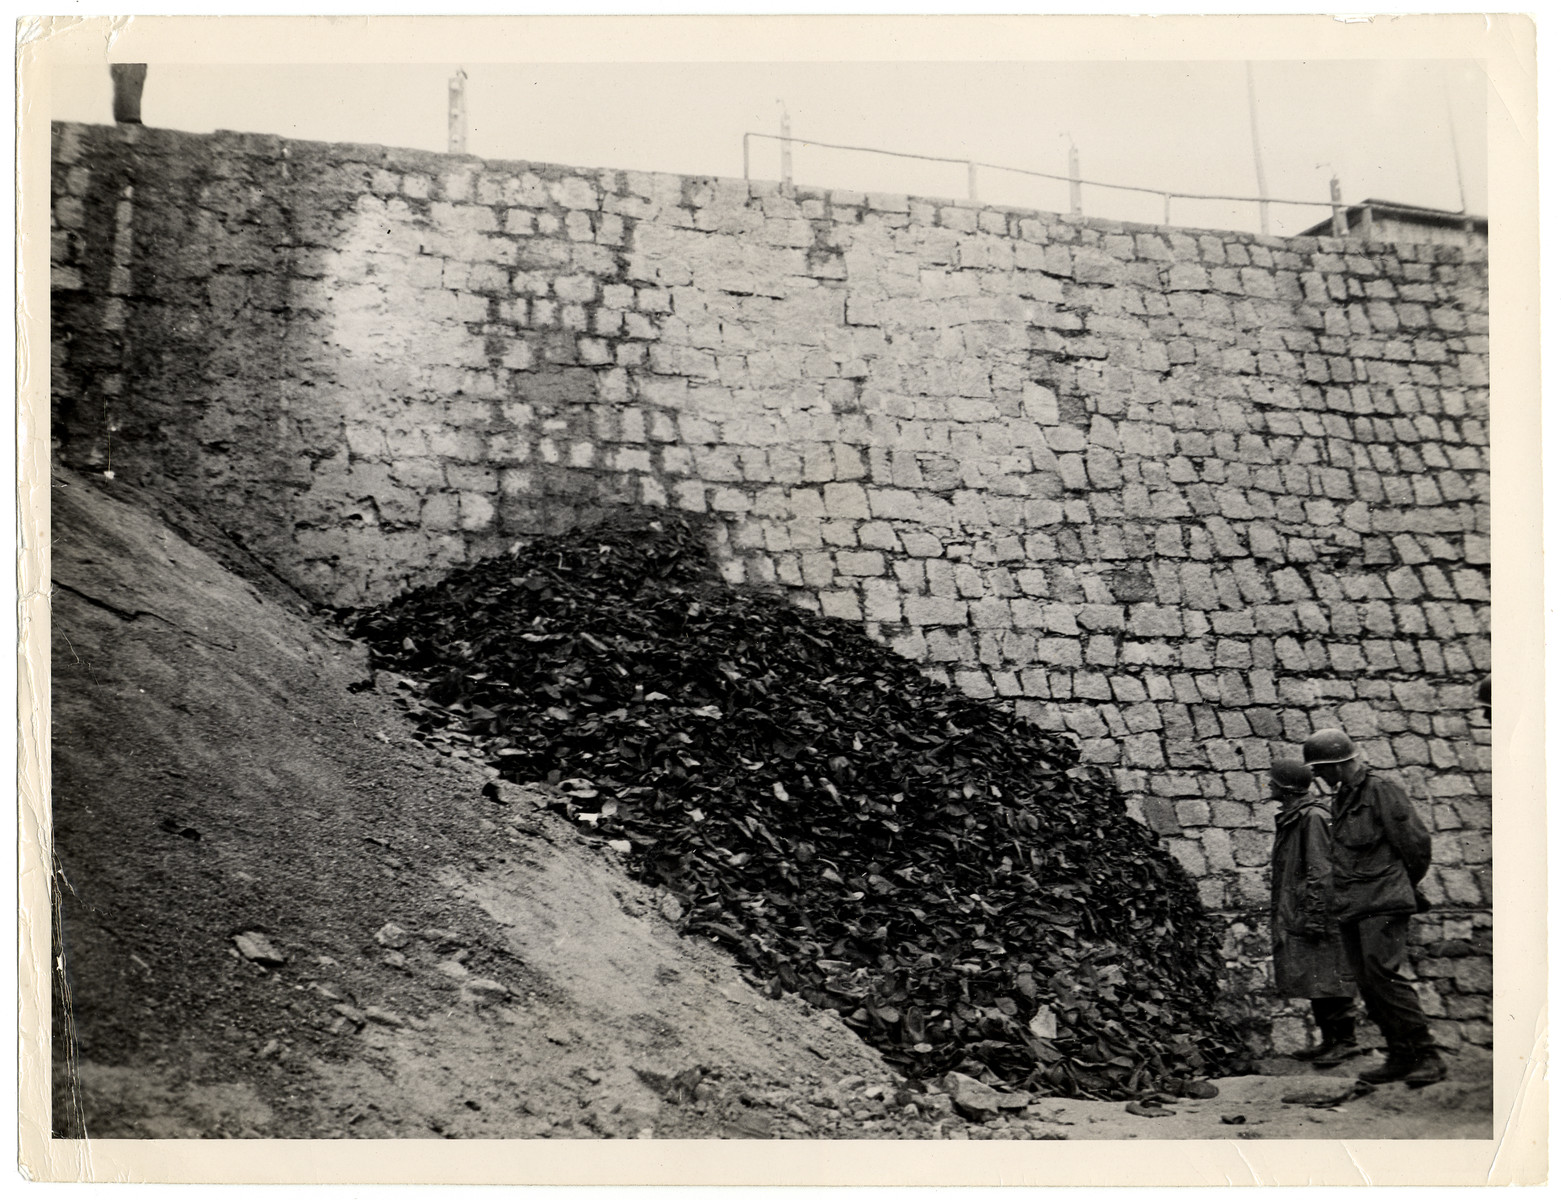 """US soldiers examine a pile of shoes that had belonged to prisoners stacked against a wall in the Flossenbuerg concentration camp.  Original caption reads: """"When troops of the 90th Infantry division, Third U.S. Army, captured Floss, Germany, six miles from the Czechoslovakian border, another Nazi concentration camp passed out of existence. The camp, fenced off with electrical barbed wire, contained 16,000 sick and starved inmates, including 400 cases of typhus. Originally, the enclosure confined 60,000 political prisoners and military prisoners-of-war of all nations. It was estimated that 1,400 a month died of starvation after which their remains were burned by Nazi guards. Before the Germans fled ro rear areas all inmates able to walk. These pictures were taken April 24, 1945, after entry of American forces into the town."""""""